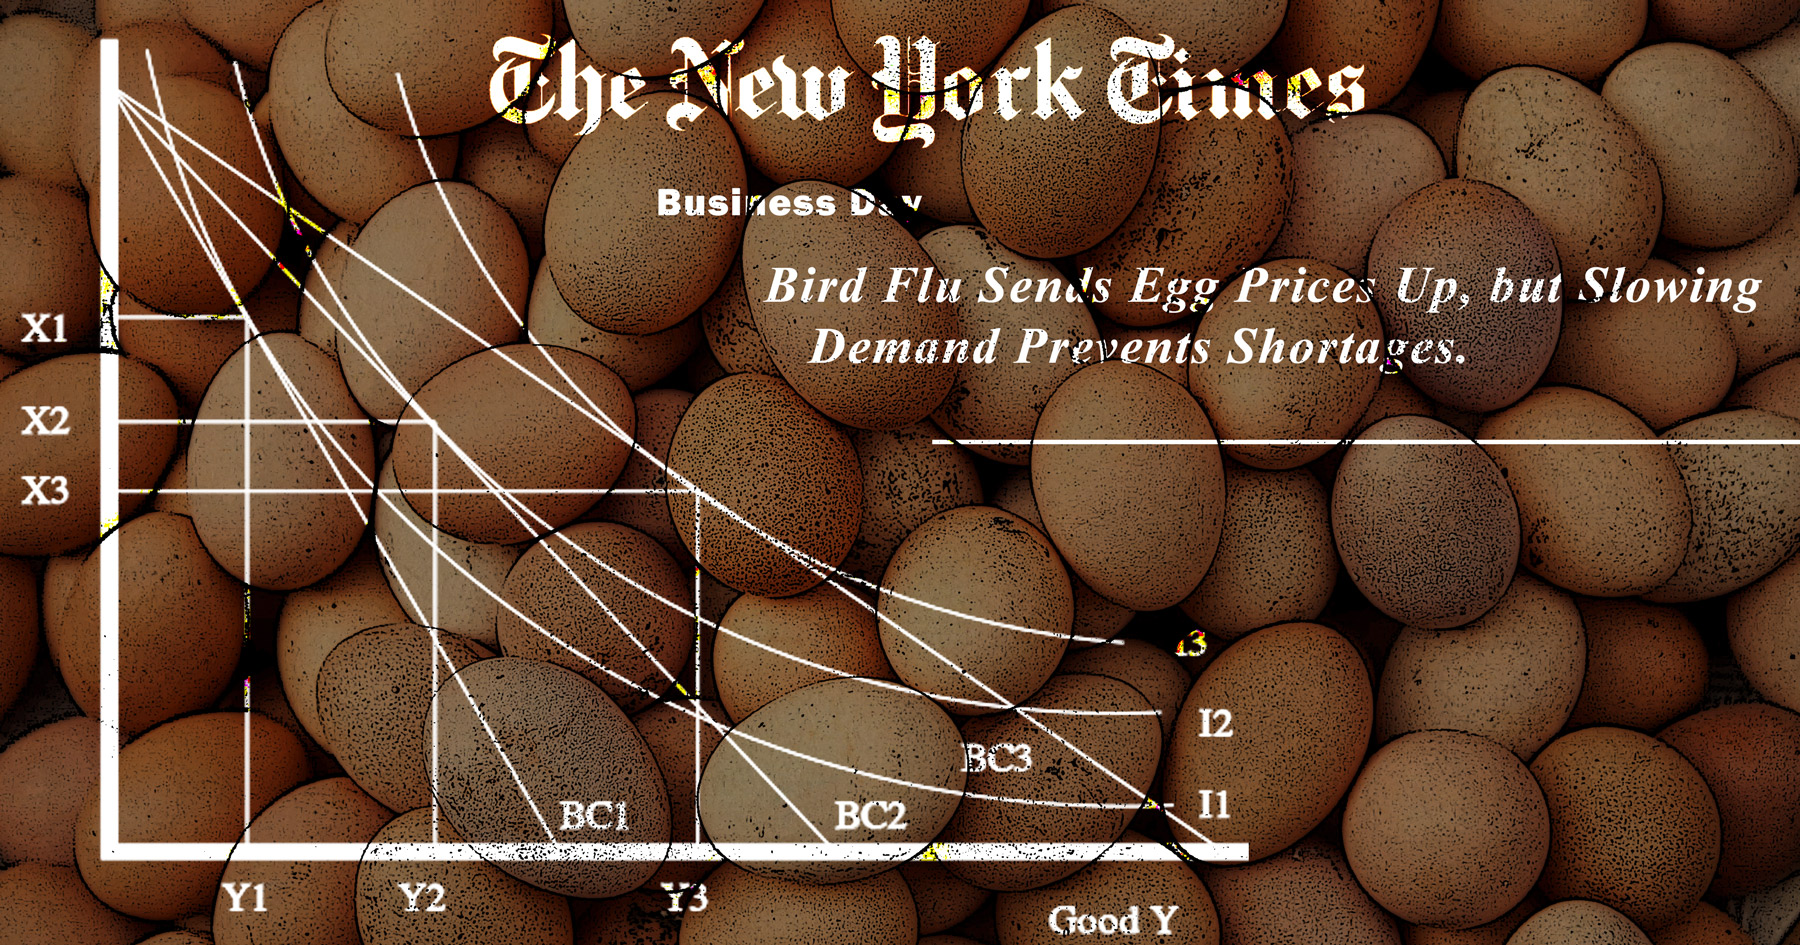 Eggs, New York Times, Economics, collage, photomontage, http://cognitivebiasparade.prosite.com/